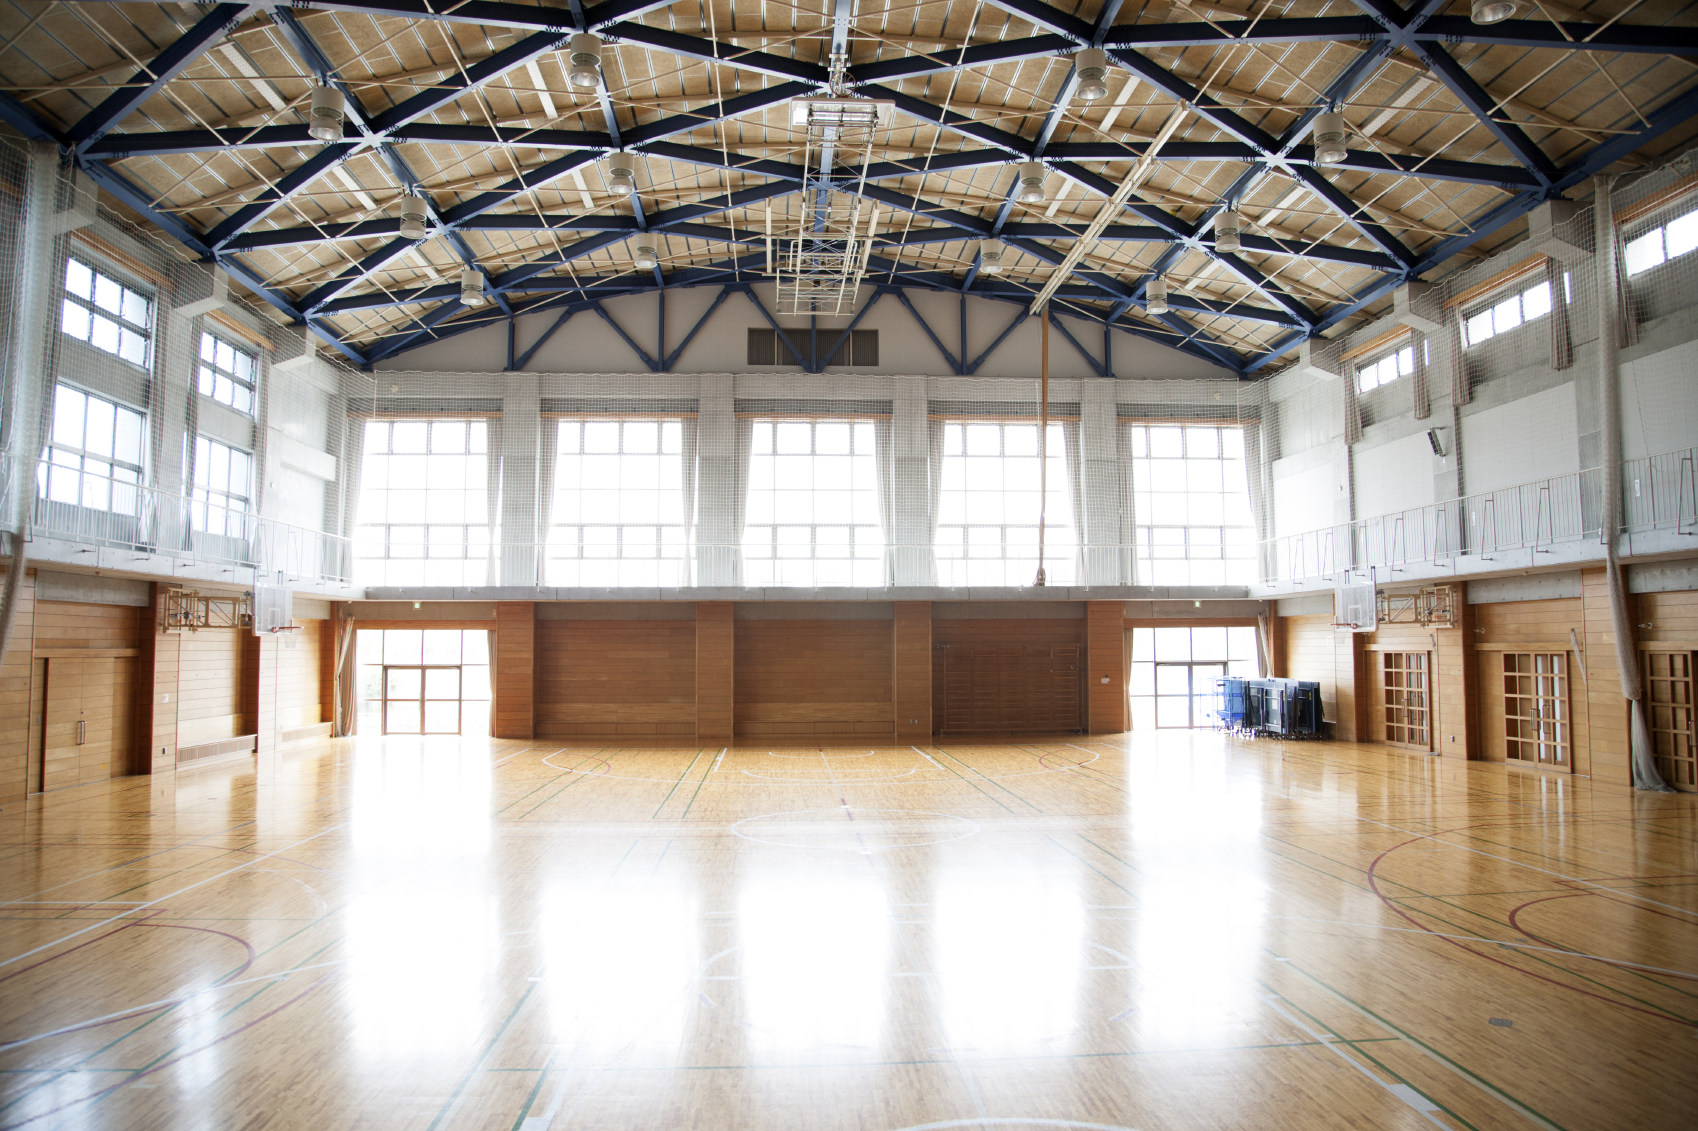 lighting for halls. LED Lighting For Sports Halls S